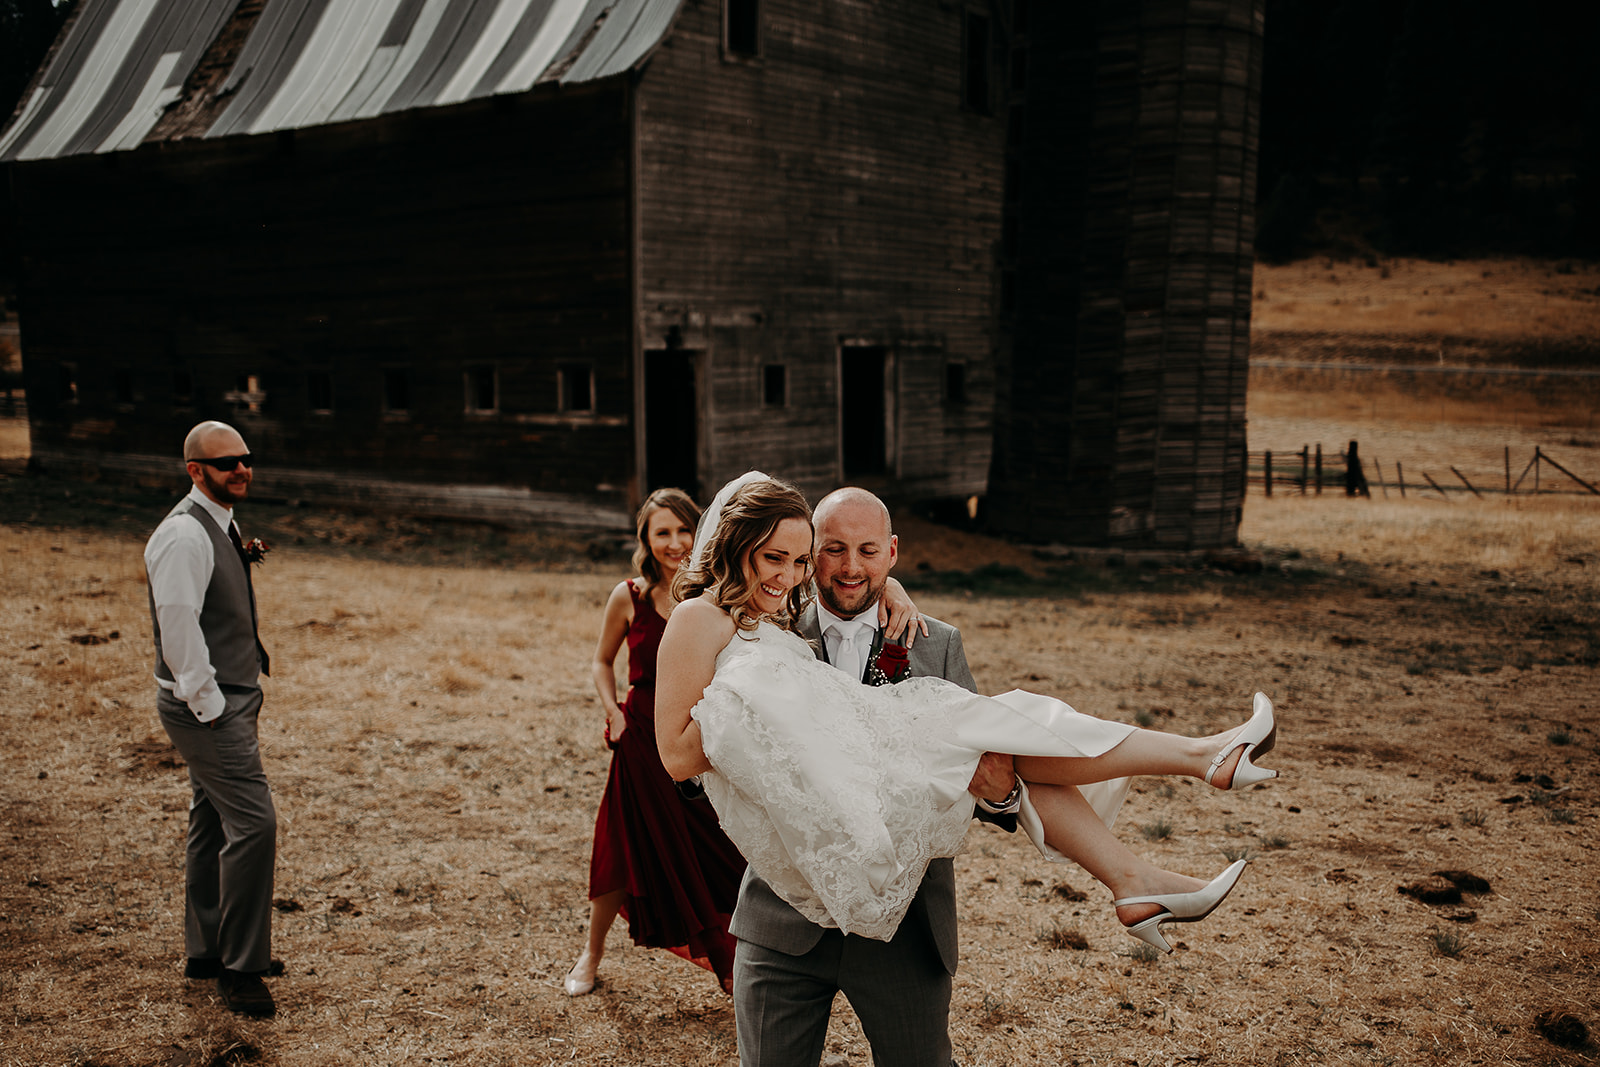 cattle-barn-wedding-cle-elum-washington-megan-gallagher-photography-winston-salem-photographer (15).jpg